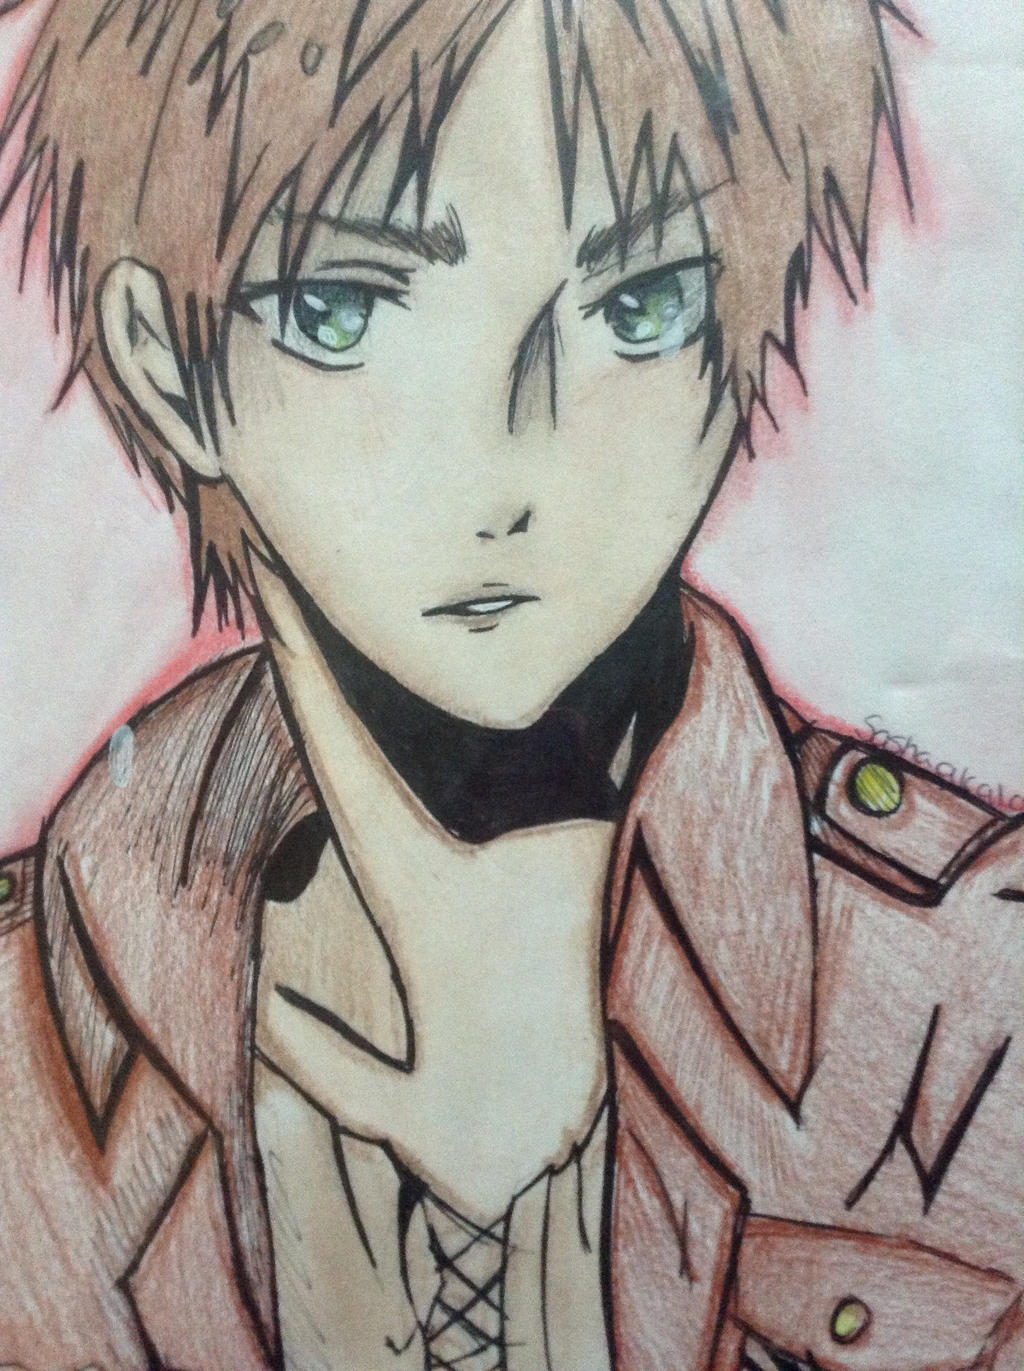 Eren jaeger drawing - photo#17